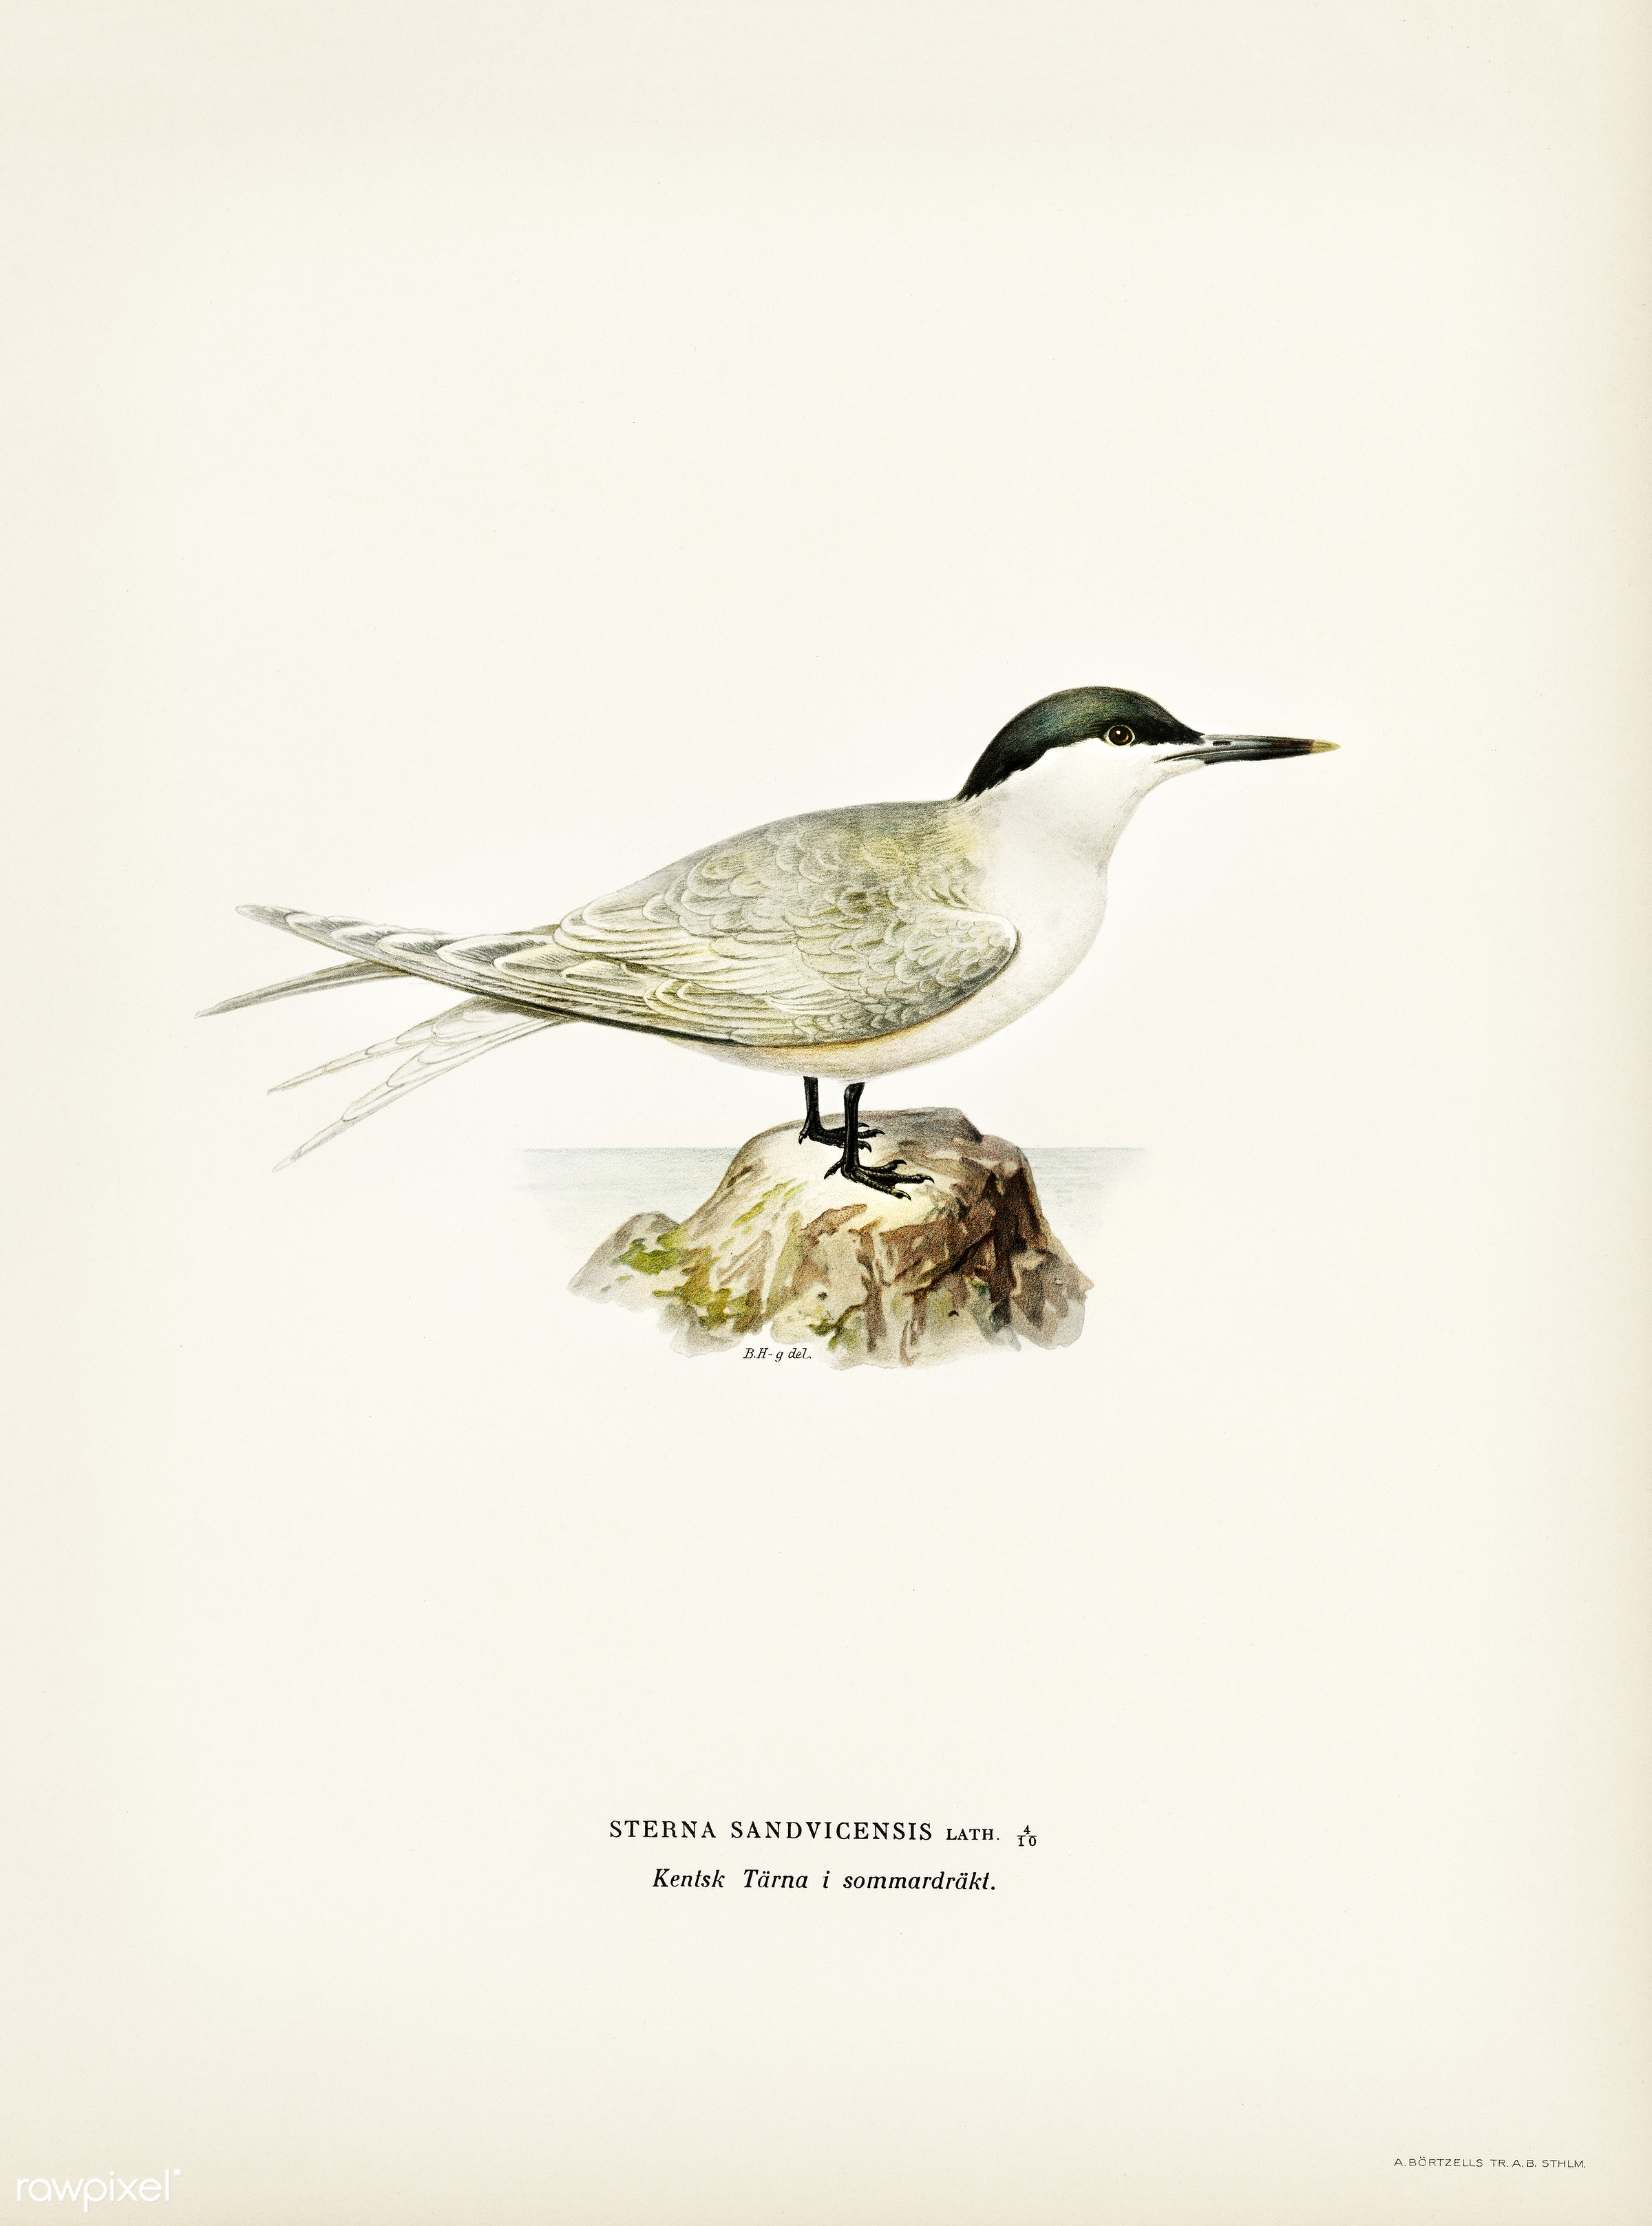 Sandwich tern (Sterna sandvicensis) illustrated by the von Wright brothers. Digitally enhanced from our own 1929 folio...